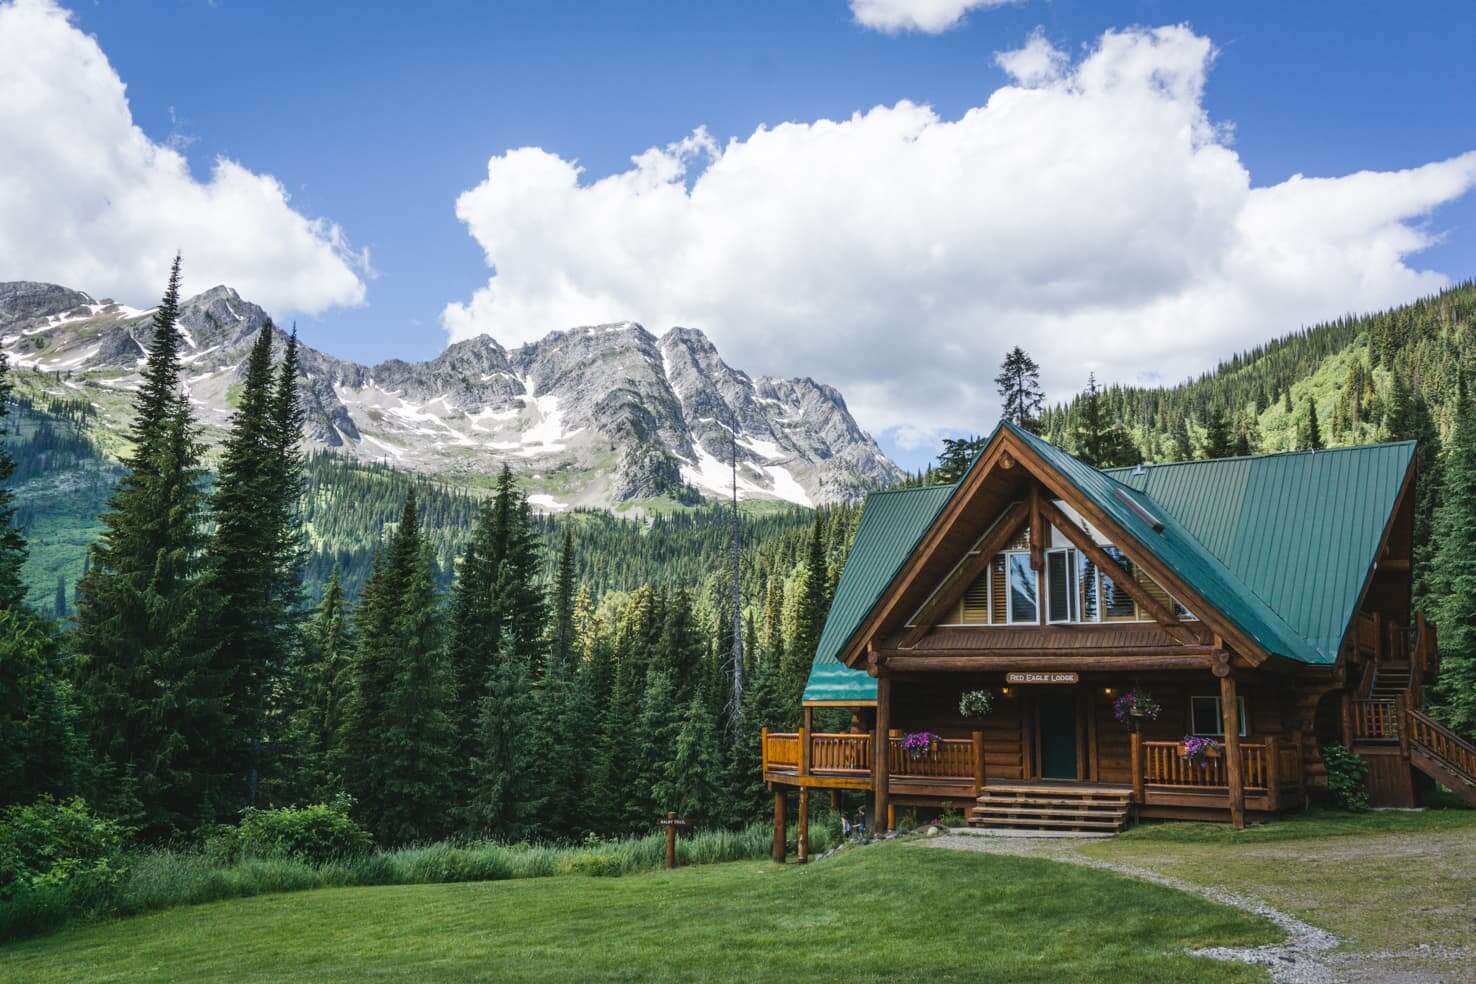 Things to do in Fernie, BC - 4 Relax at Island Lake Lodge